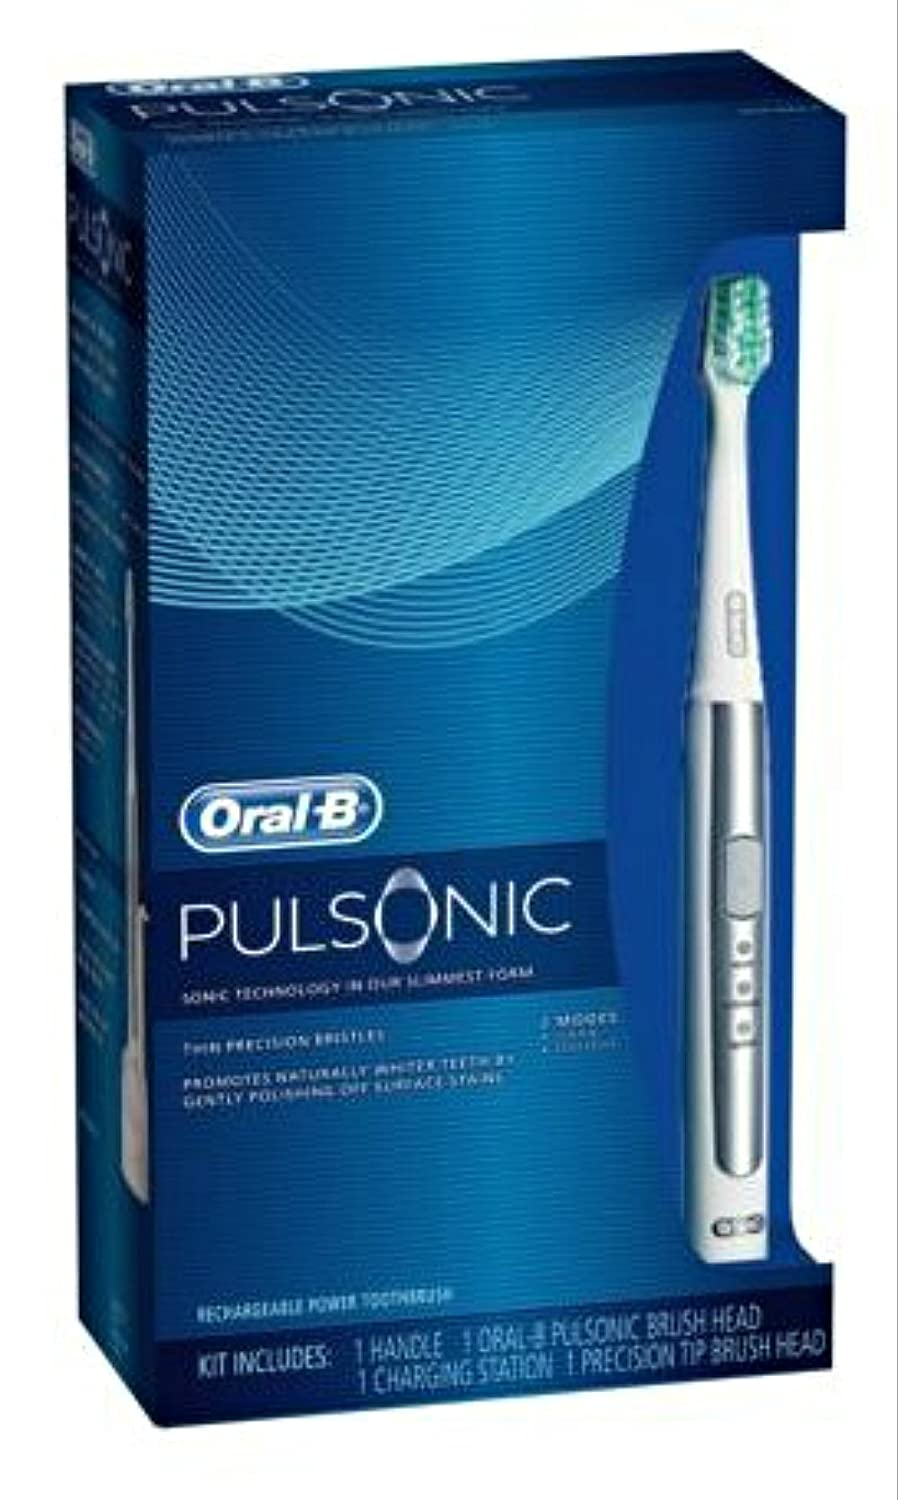 Oral B Pulsonic Rechargeable Power Toothbrush S15.523.2